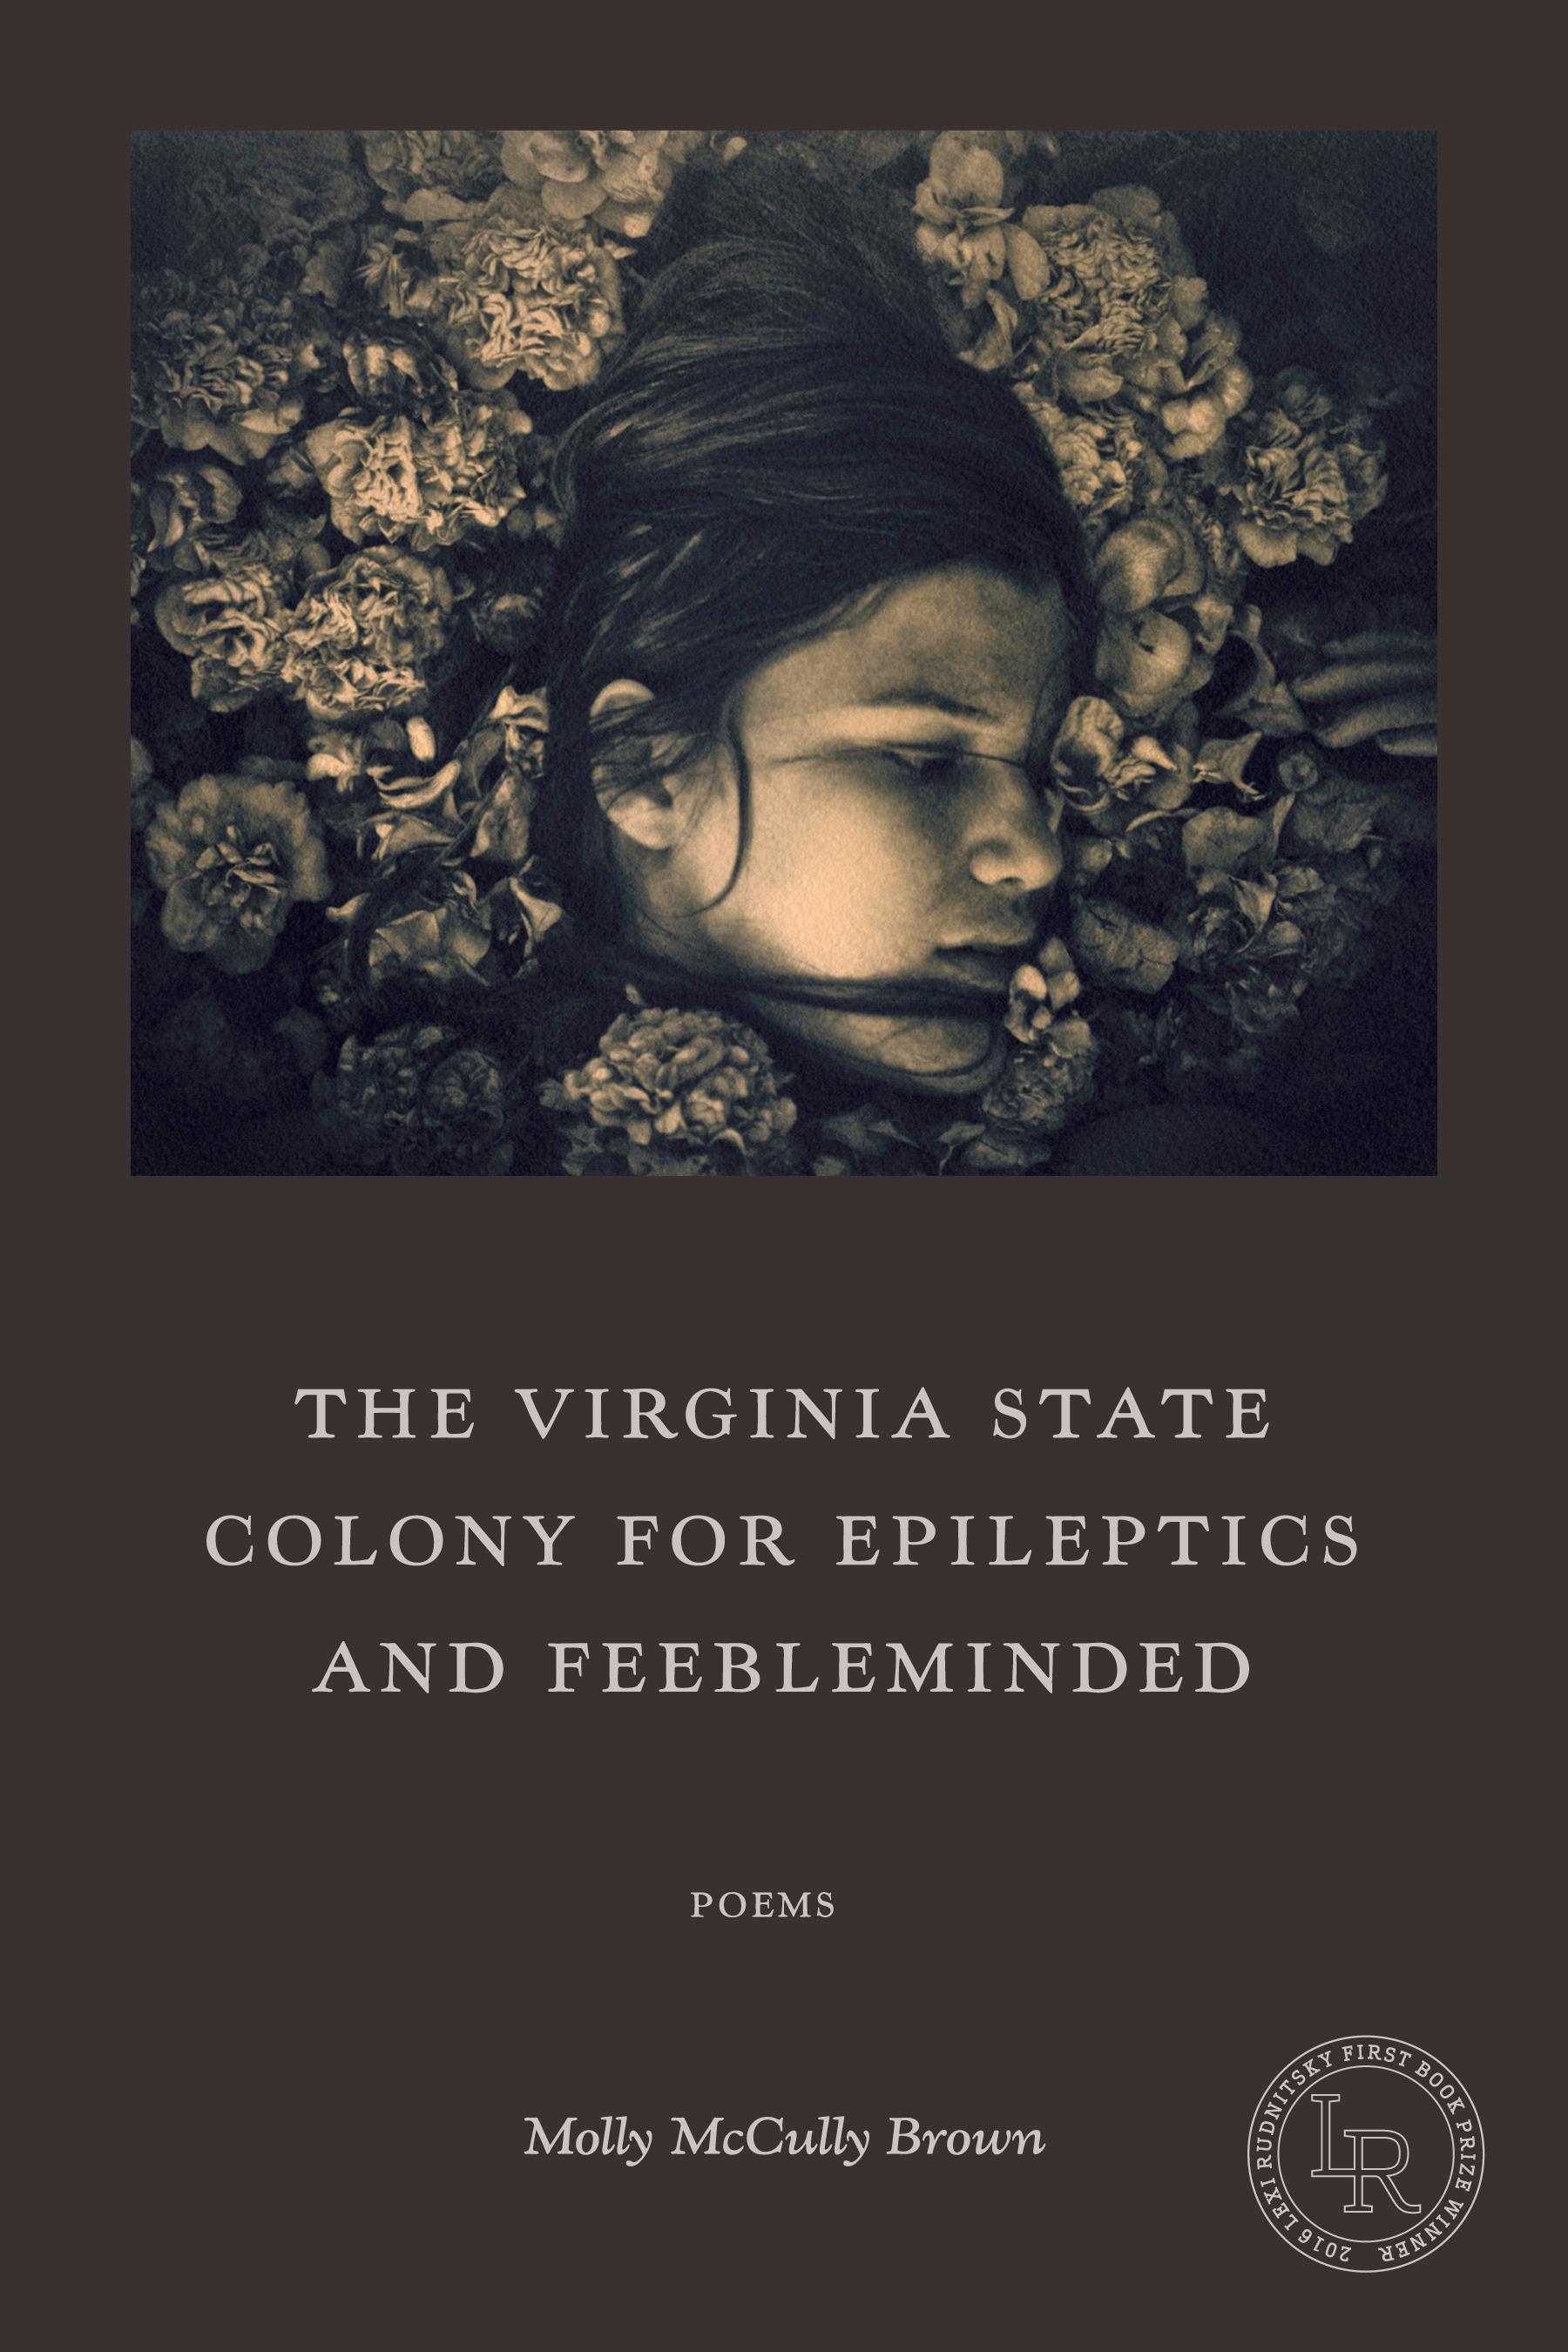 Brown_Virginia-State_cover.jpg